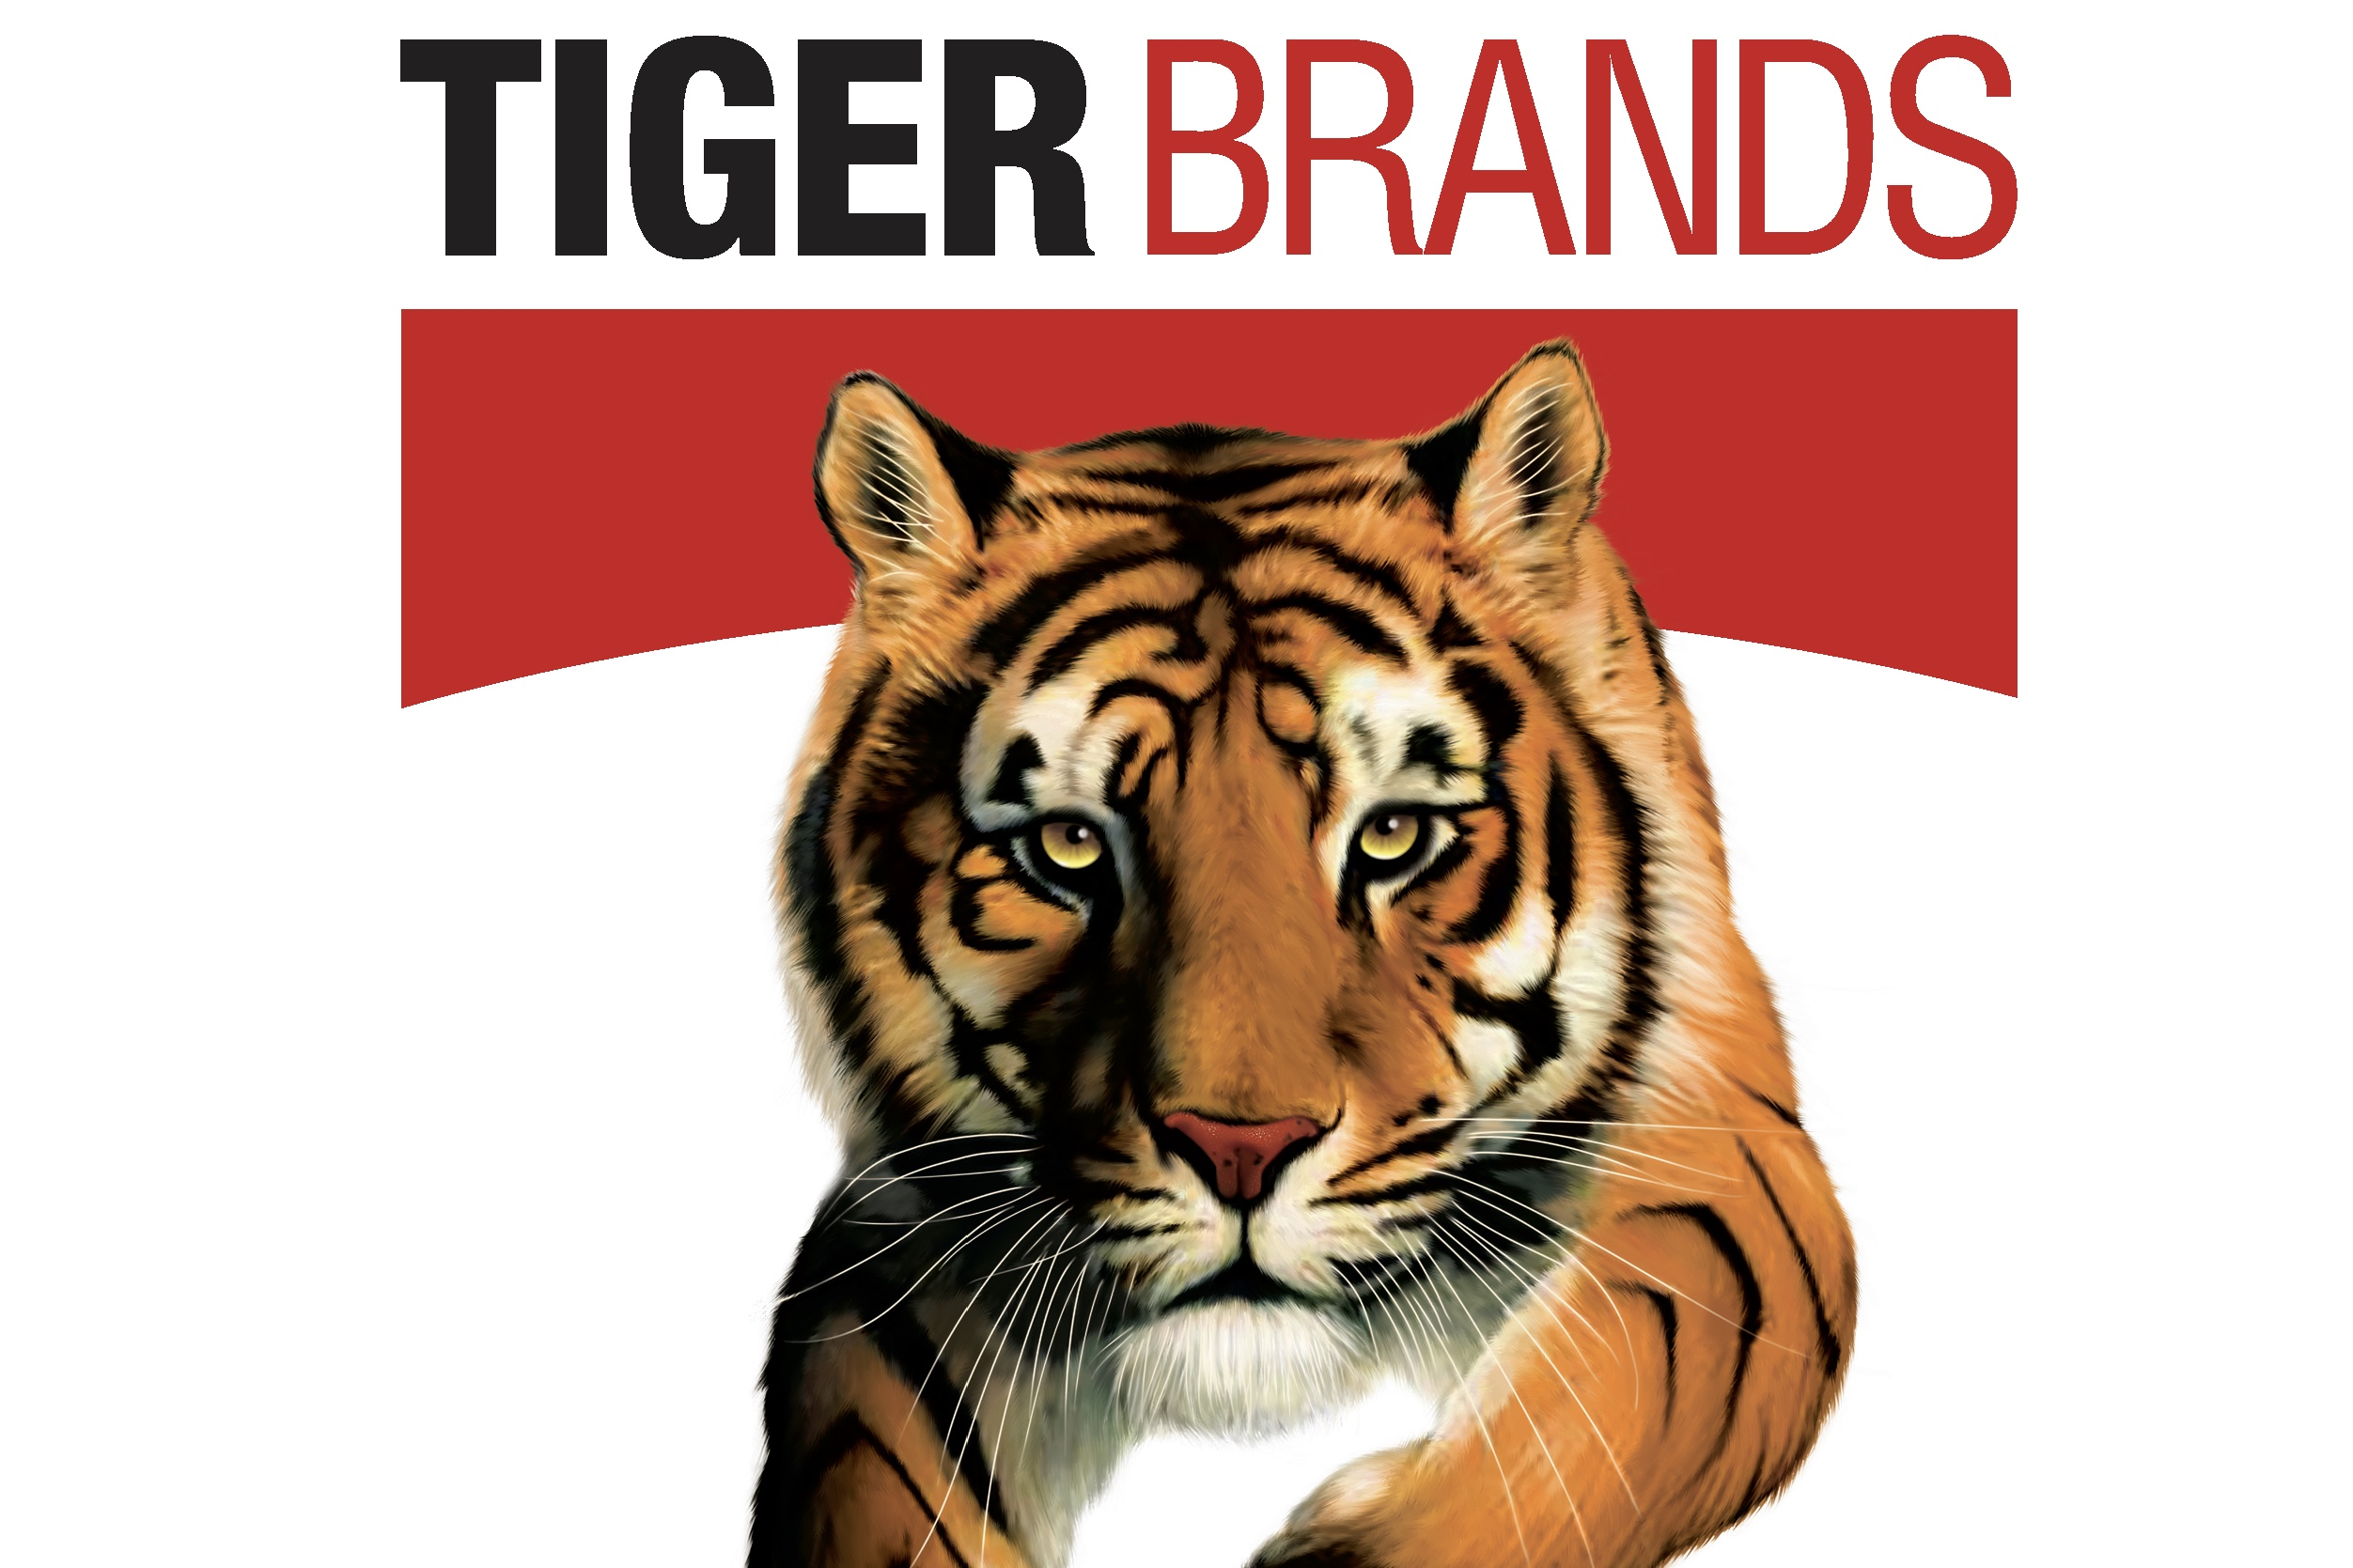 newsfeeds24,Processed food, Enterprise Food, SNAX, Listeriosis, Tiger Brands could pay out R425 million,Tiger Brands,